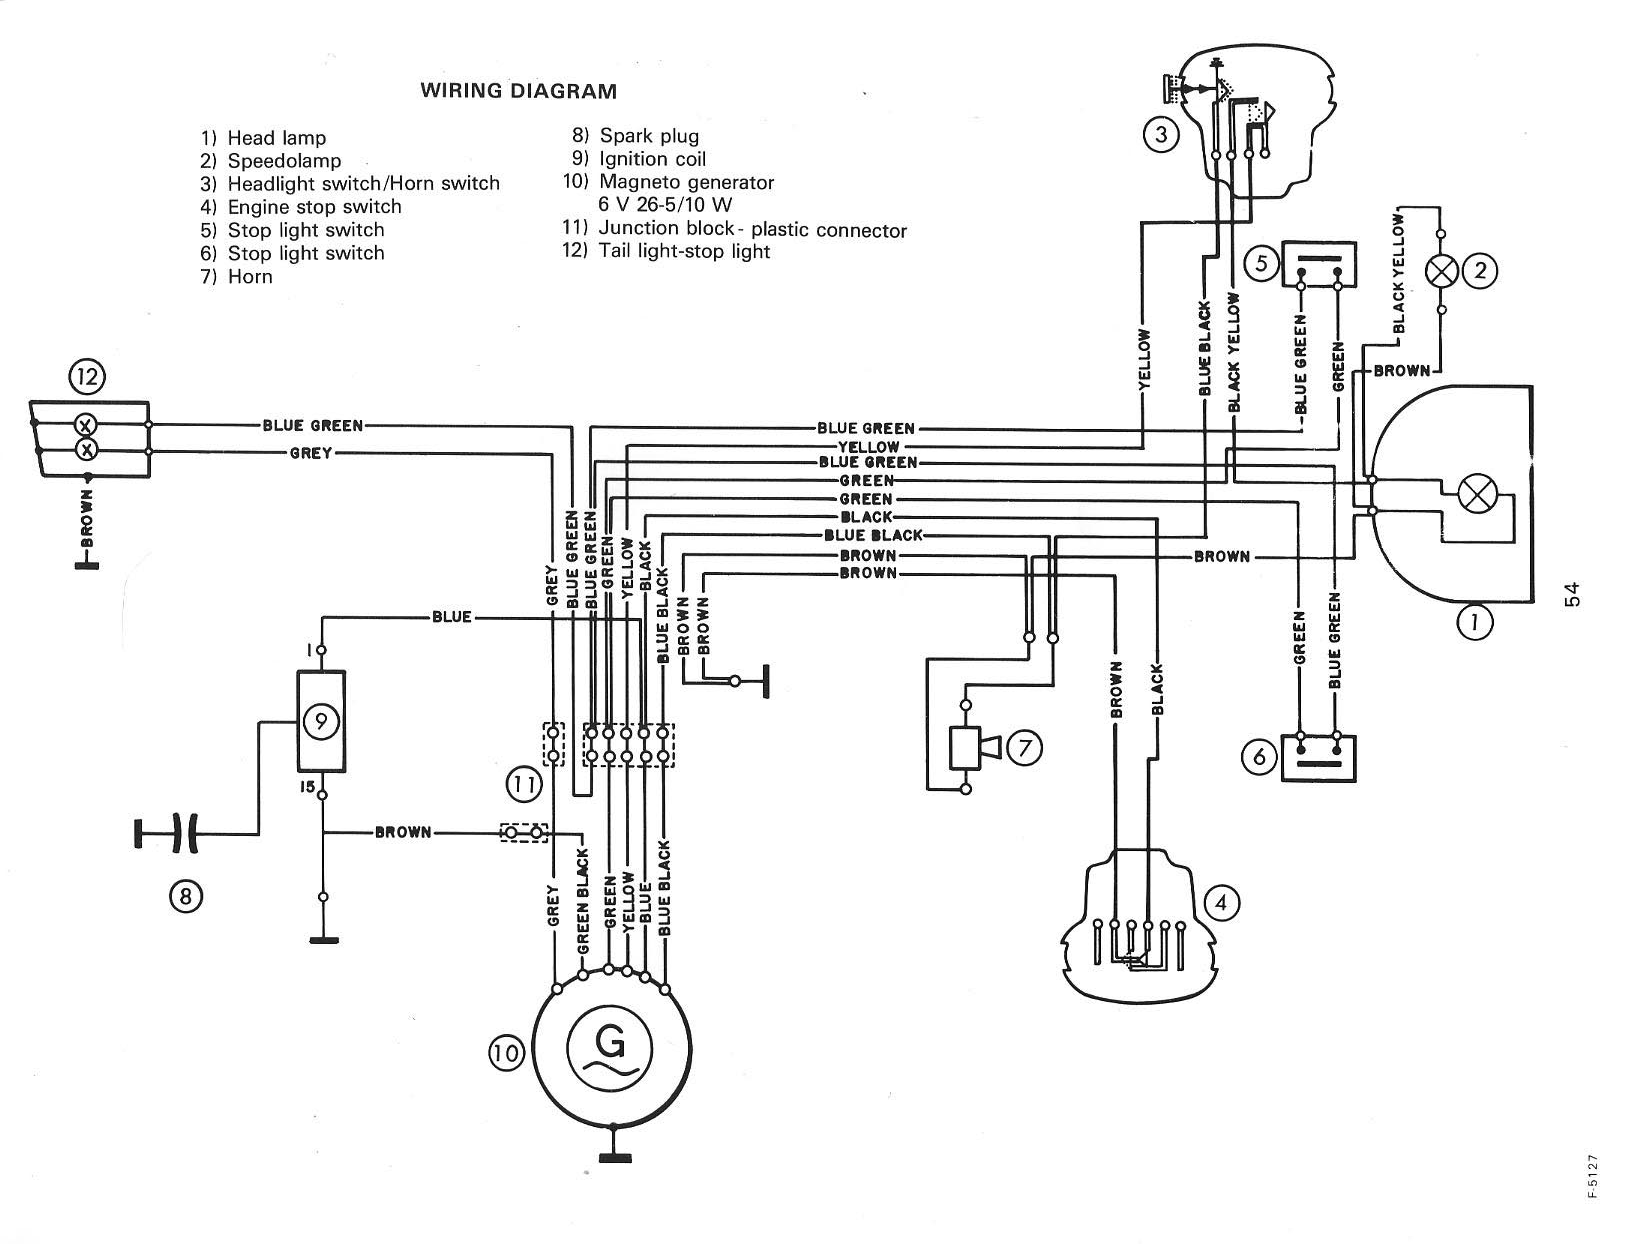 Puch Wiring Diagram Puch E50 Wiring Diagram - Wiring Diagrams